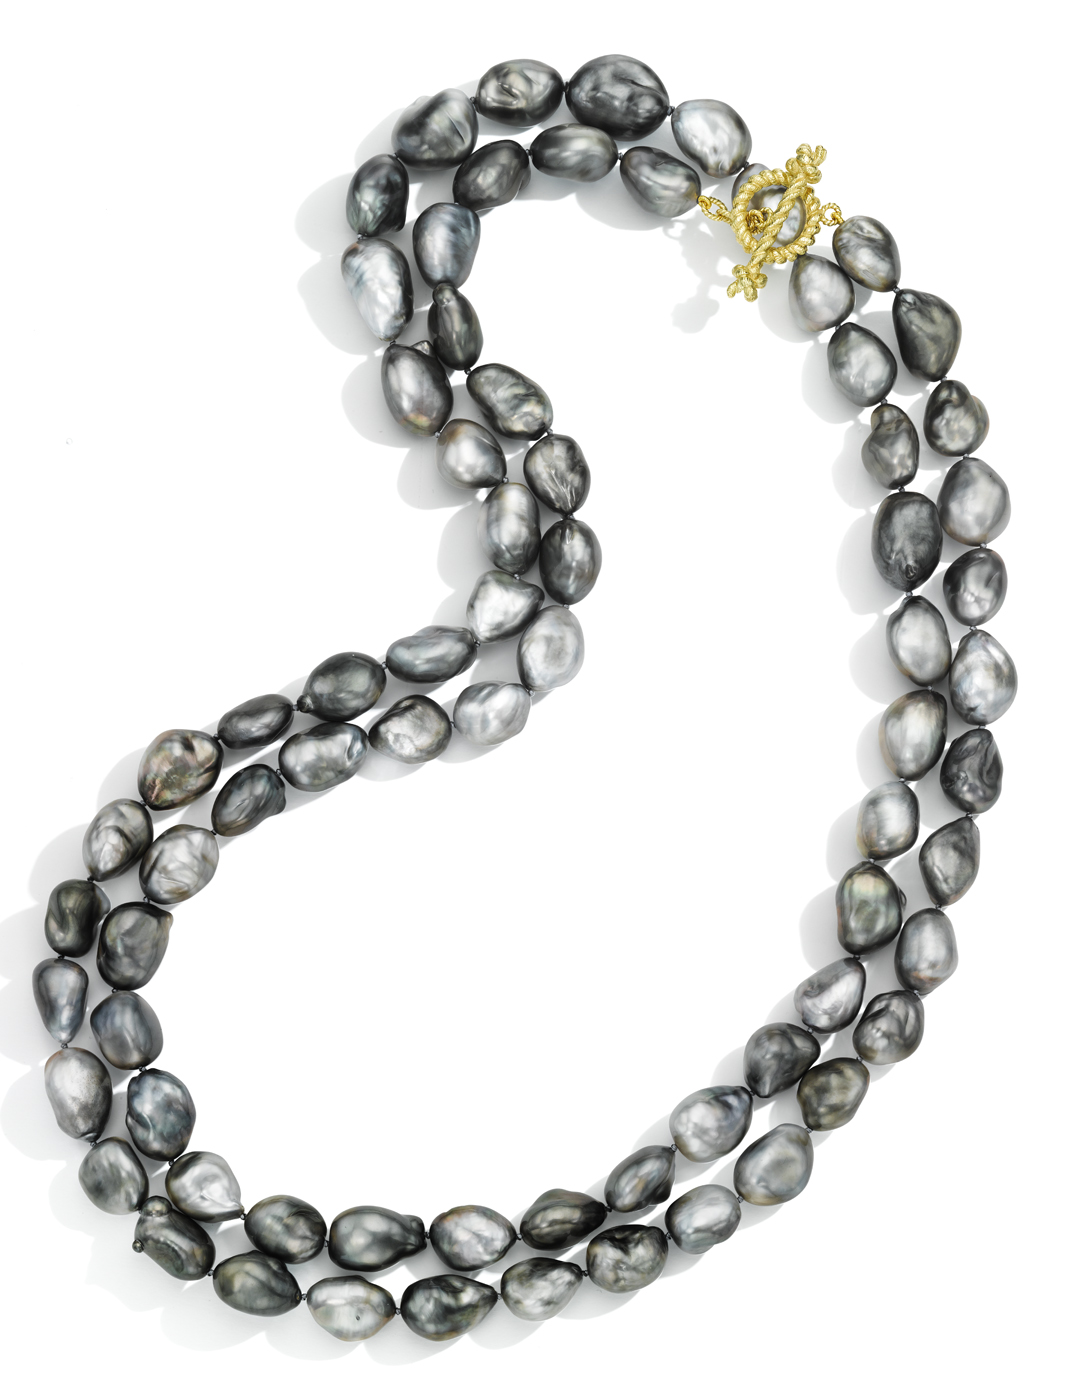 mish_necklaces_Baroque-Tah-Rope-NK-1